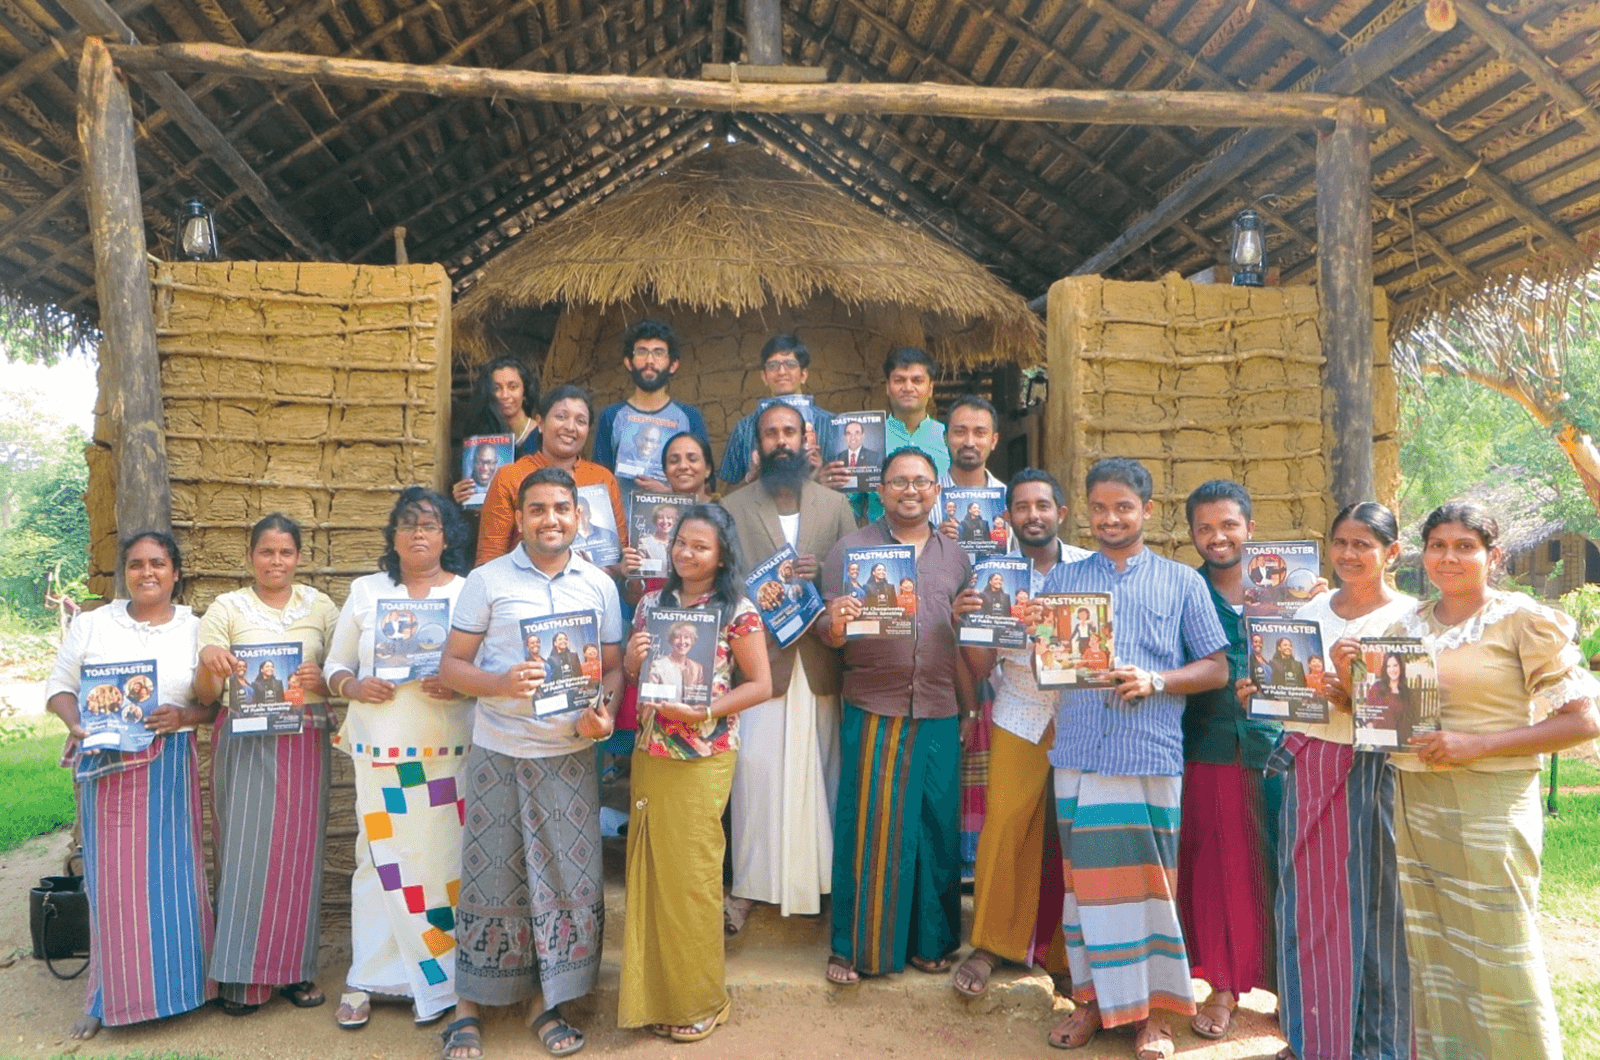 Toastmasters group pose in ancient village in Puranagama, Sri Lanka